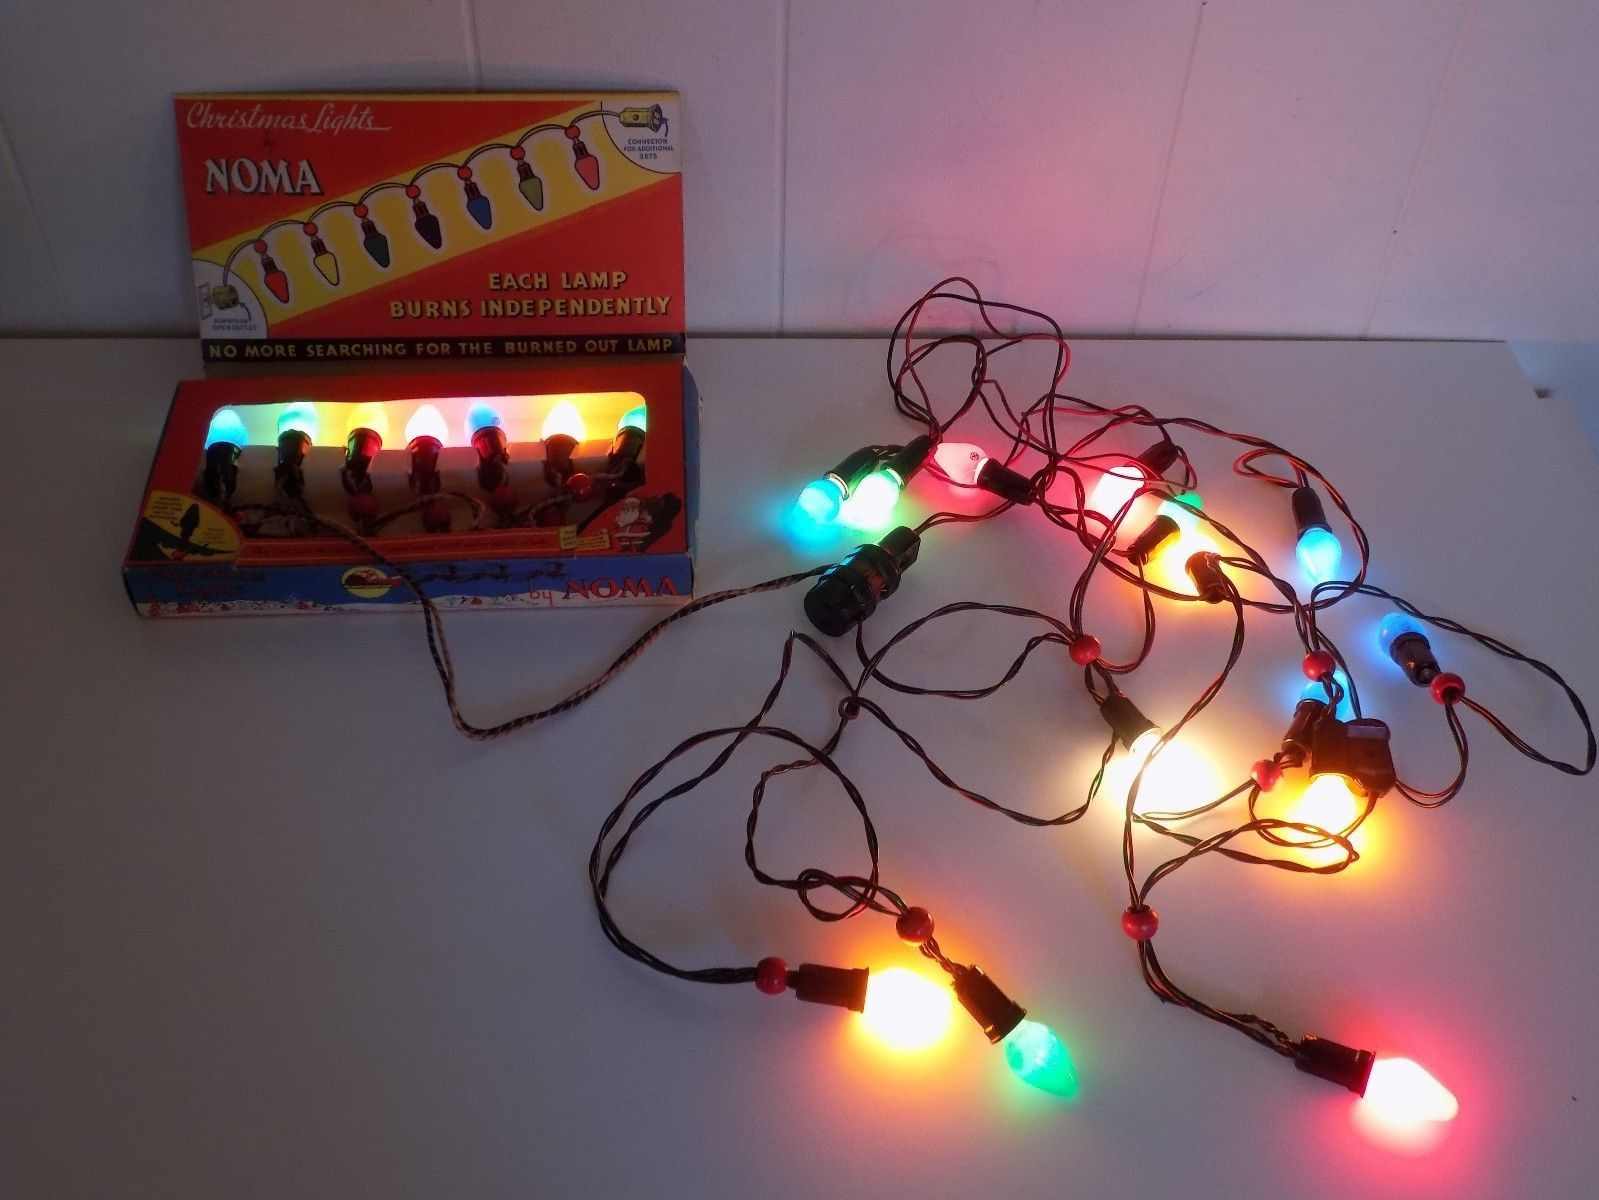 Noma Christmas Lights 2 Strands 1 Box 1 Other Set | Products ...